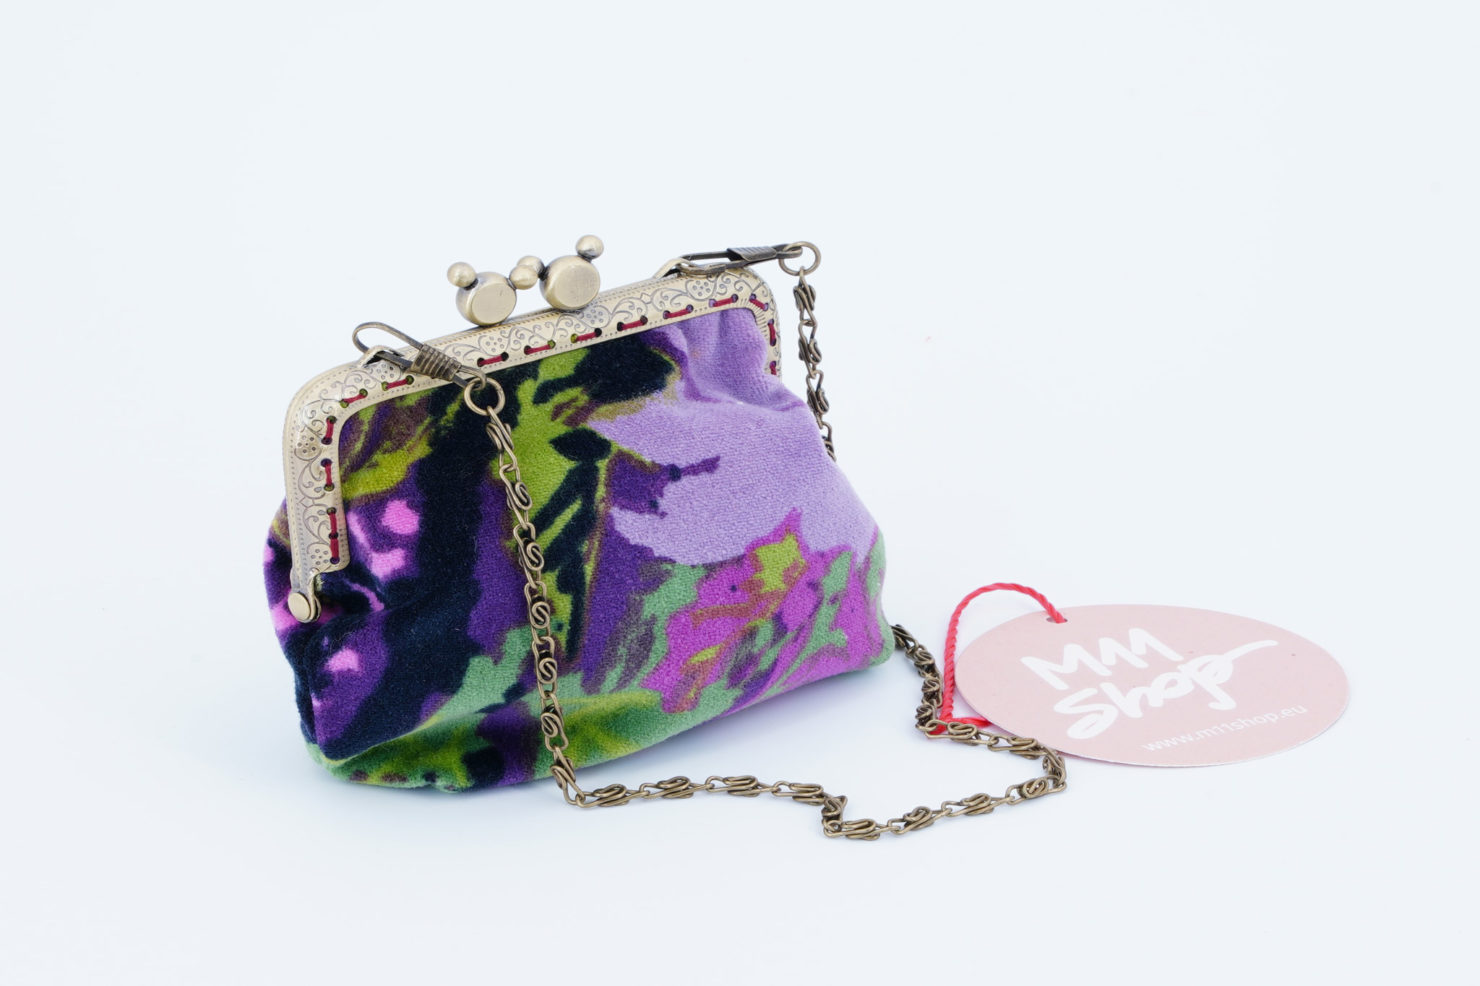 KM 0 HAND MADE PURSE IN VINTAGE FLOREAL VELVET M1 VIOLET